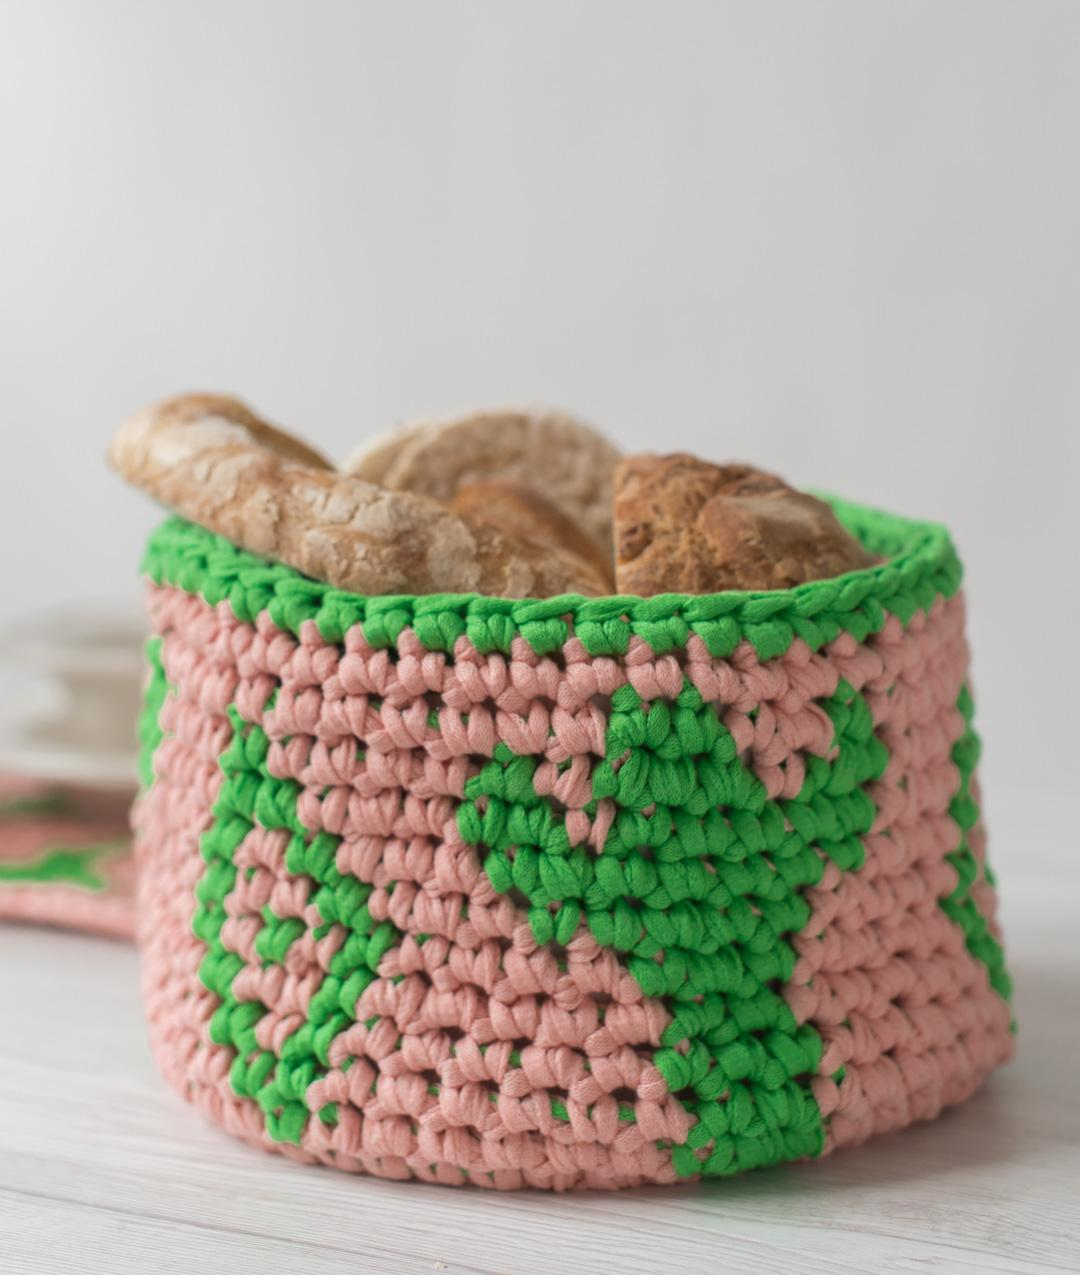 Collezione Home Decor  - CasaCollezione Home Decor  - Casa - CACTUS BASKET - 1